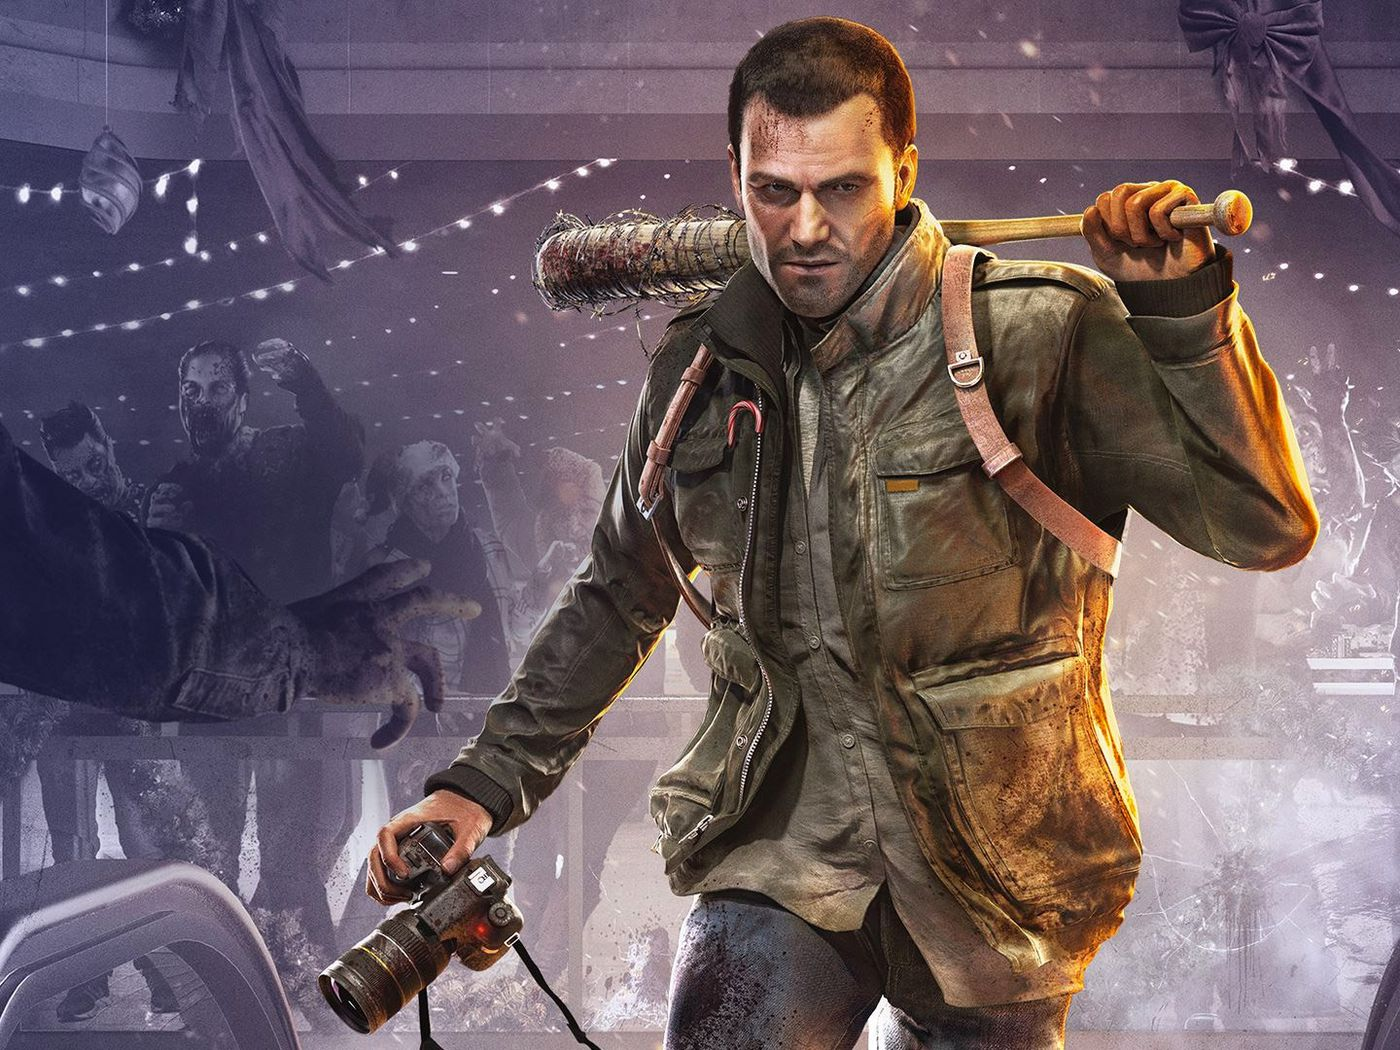 Dead Rising 4 Dlc Brings Back The Timer Adds 18 Holes Of Mini